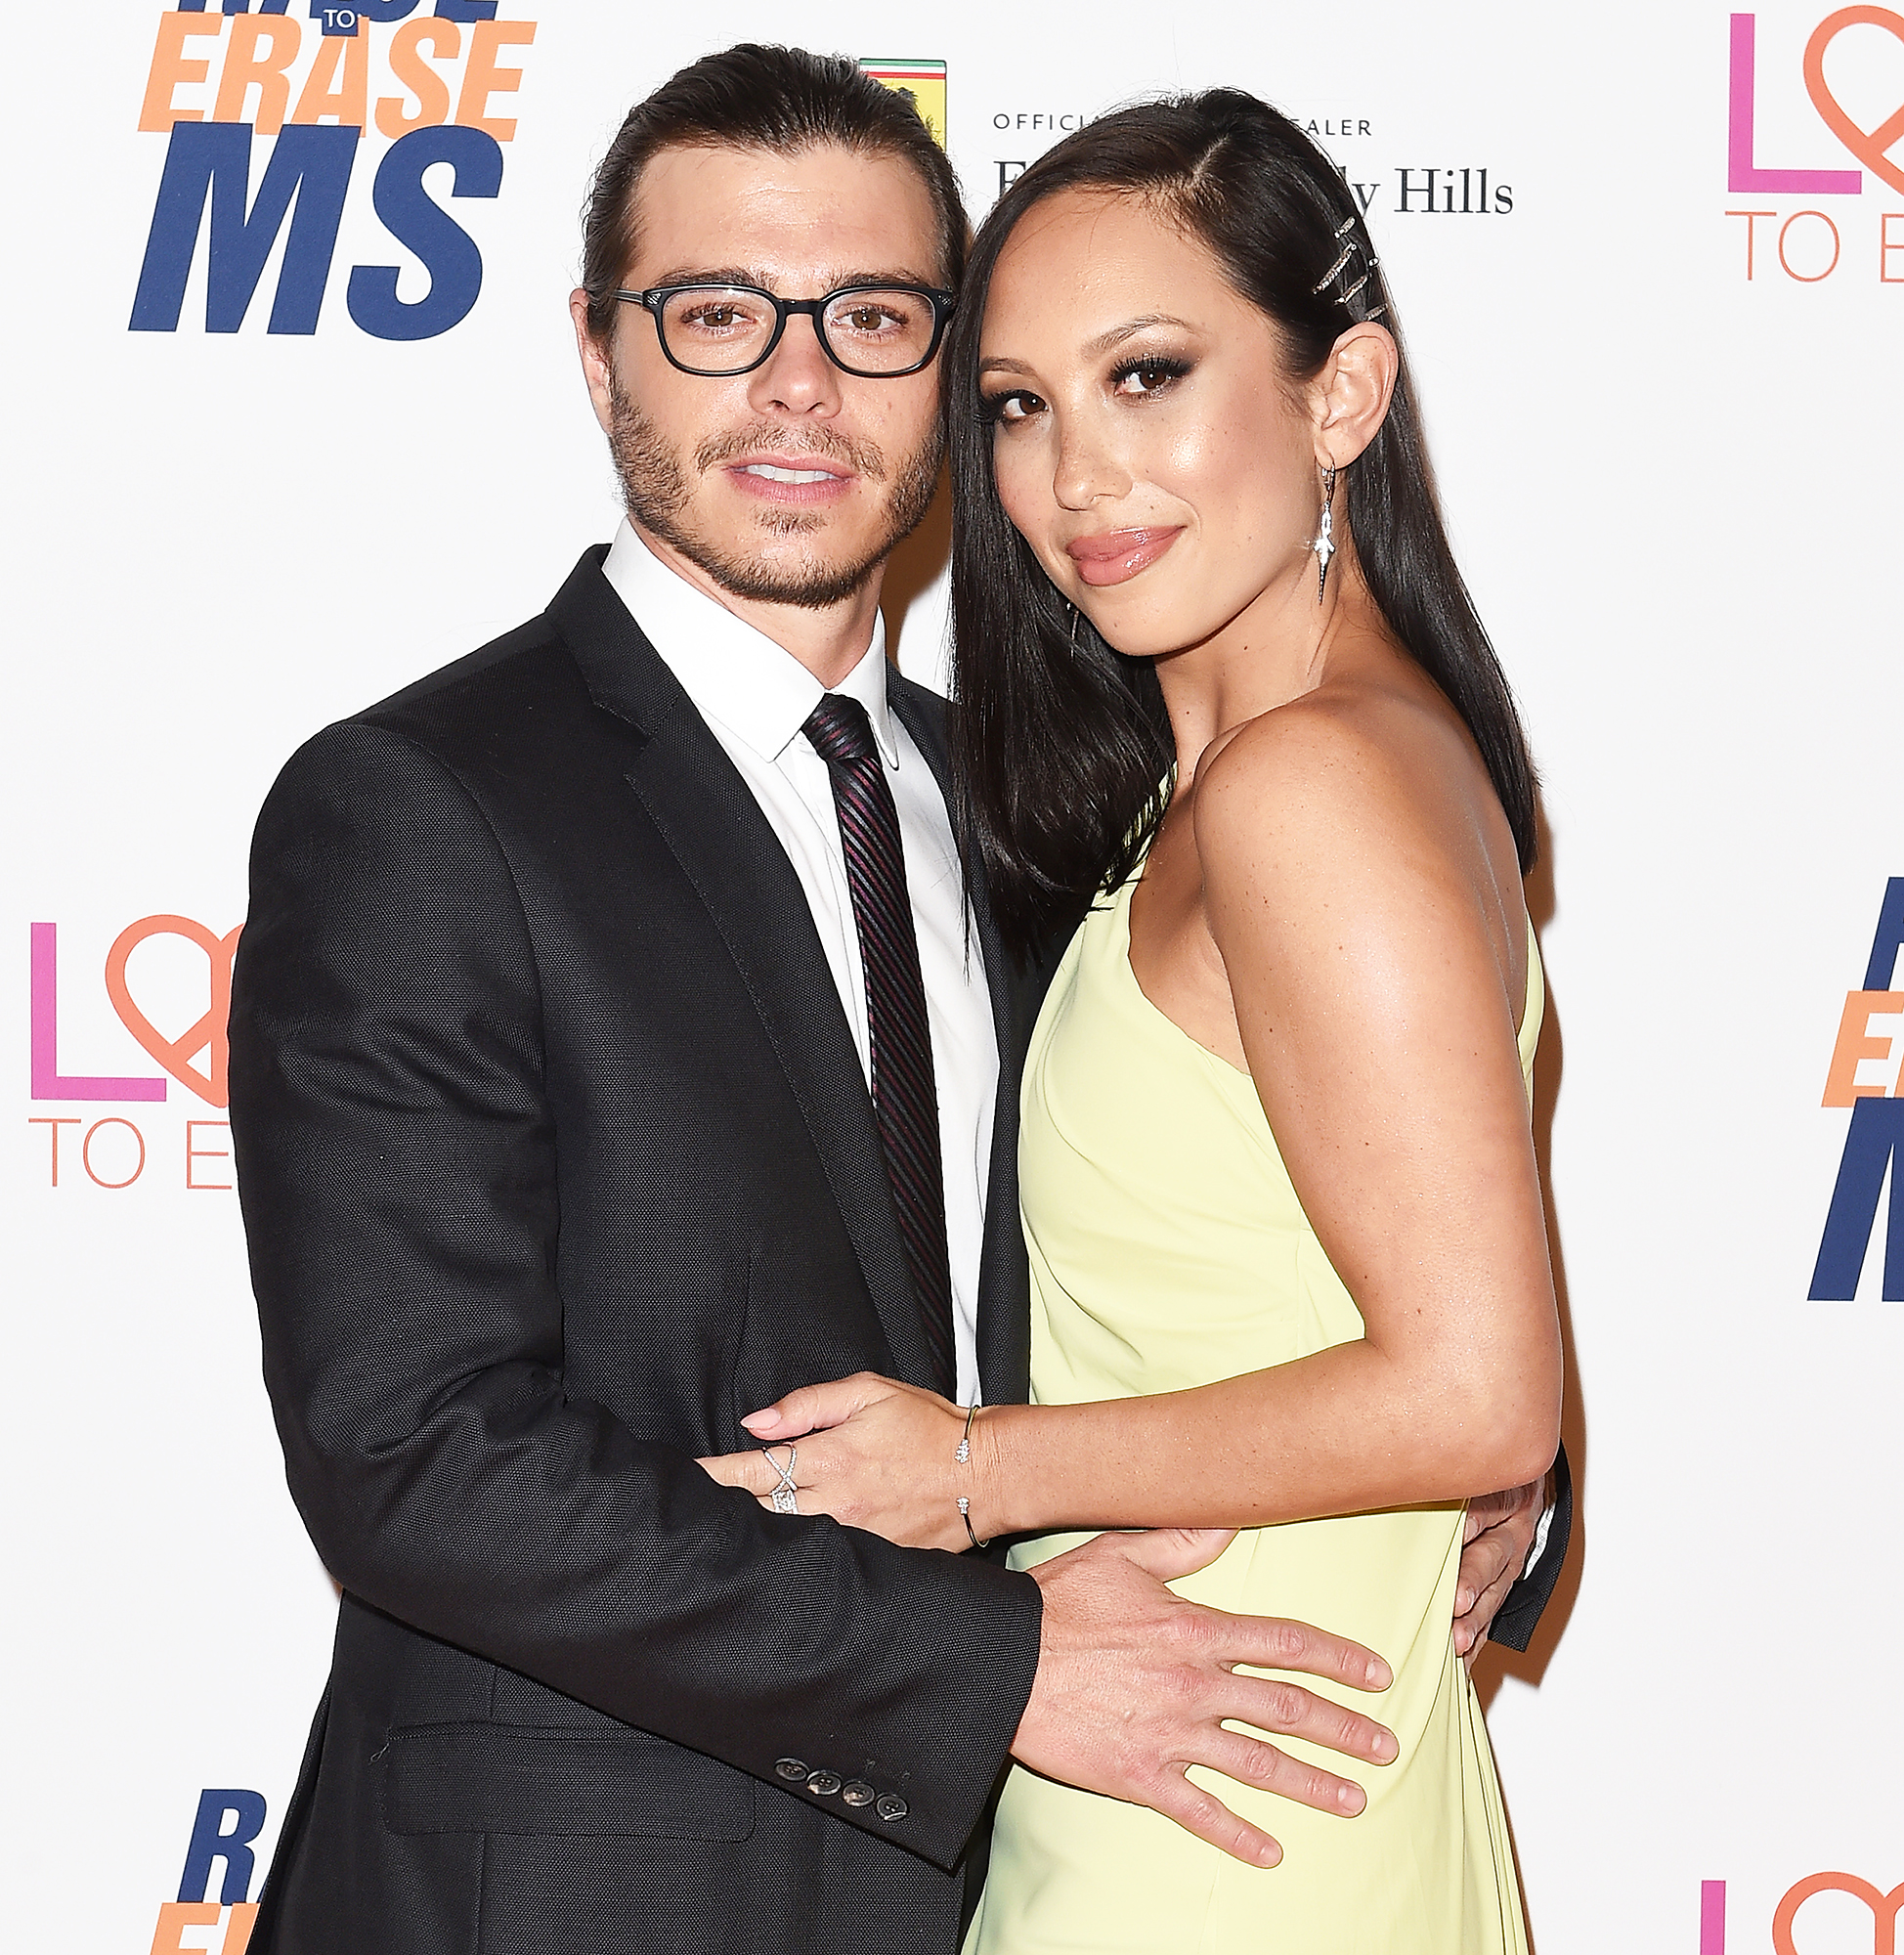 Matthew Lawrence Cheryl Burke Want Kids - Matthew Lawrence and Cheryl Burke arrive at the 25th Annual Race to Erase MS Gala at The Beverly Hilton Hotel on April 20, 2018 in Beverly Hills, California.